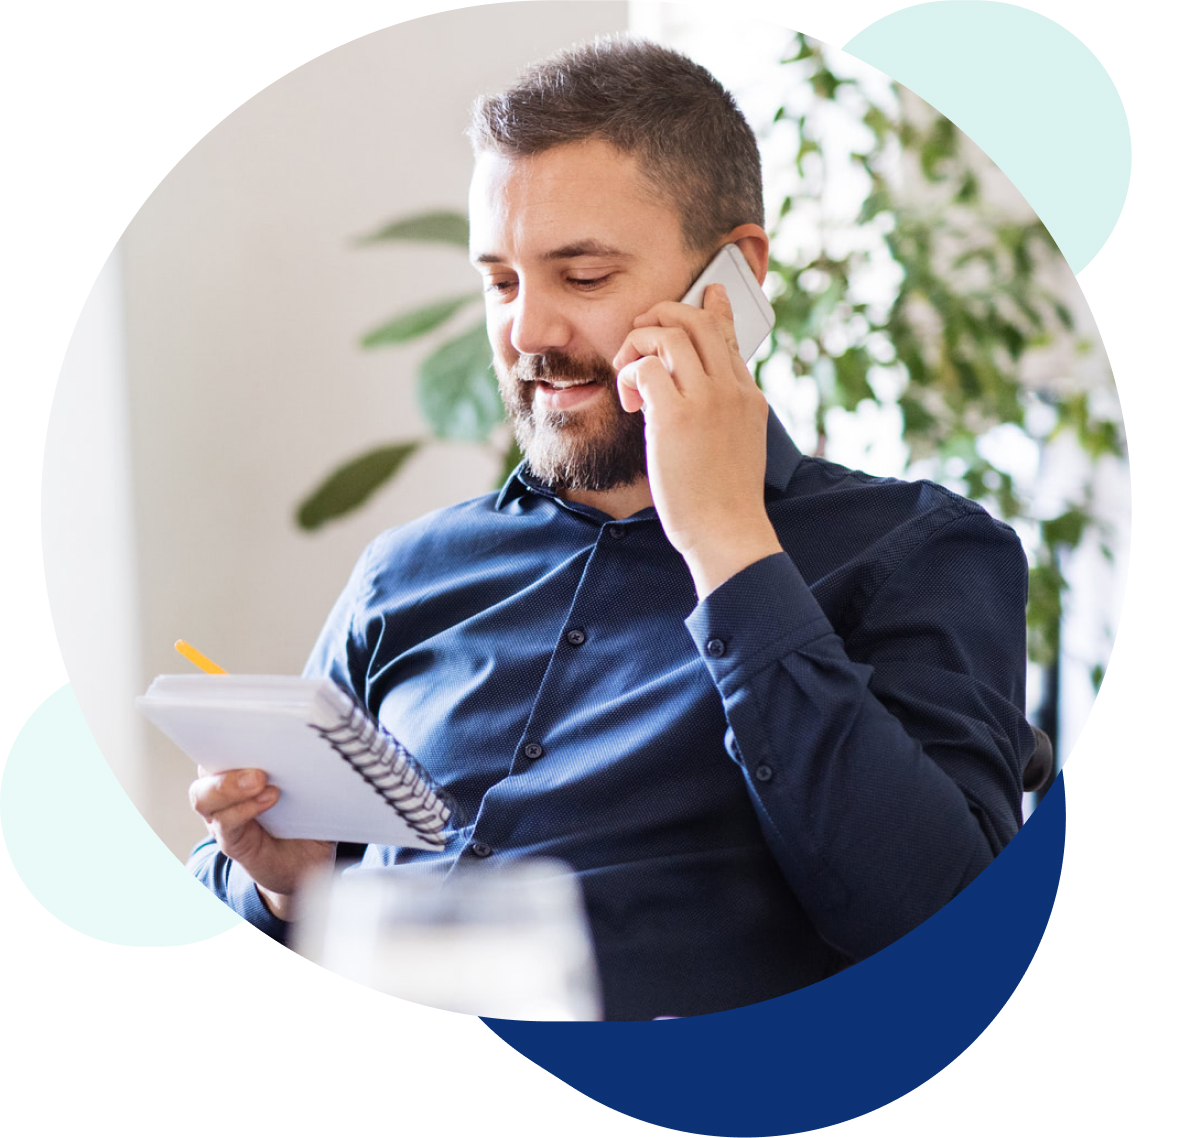 Man with beard on the phone at his office desk looking at notepad